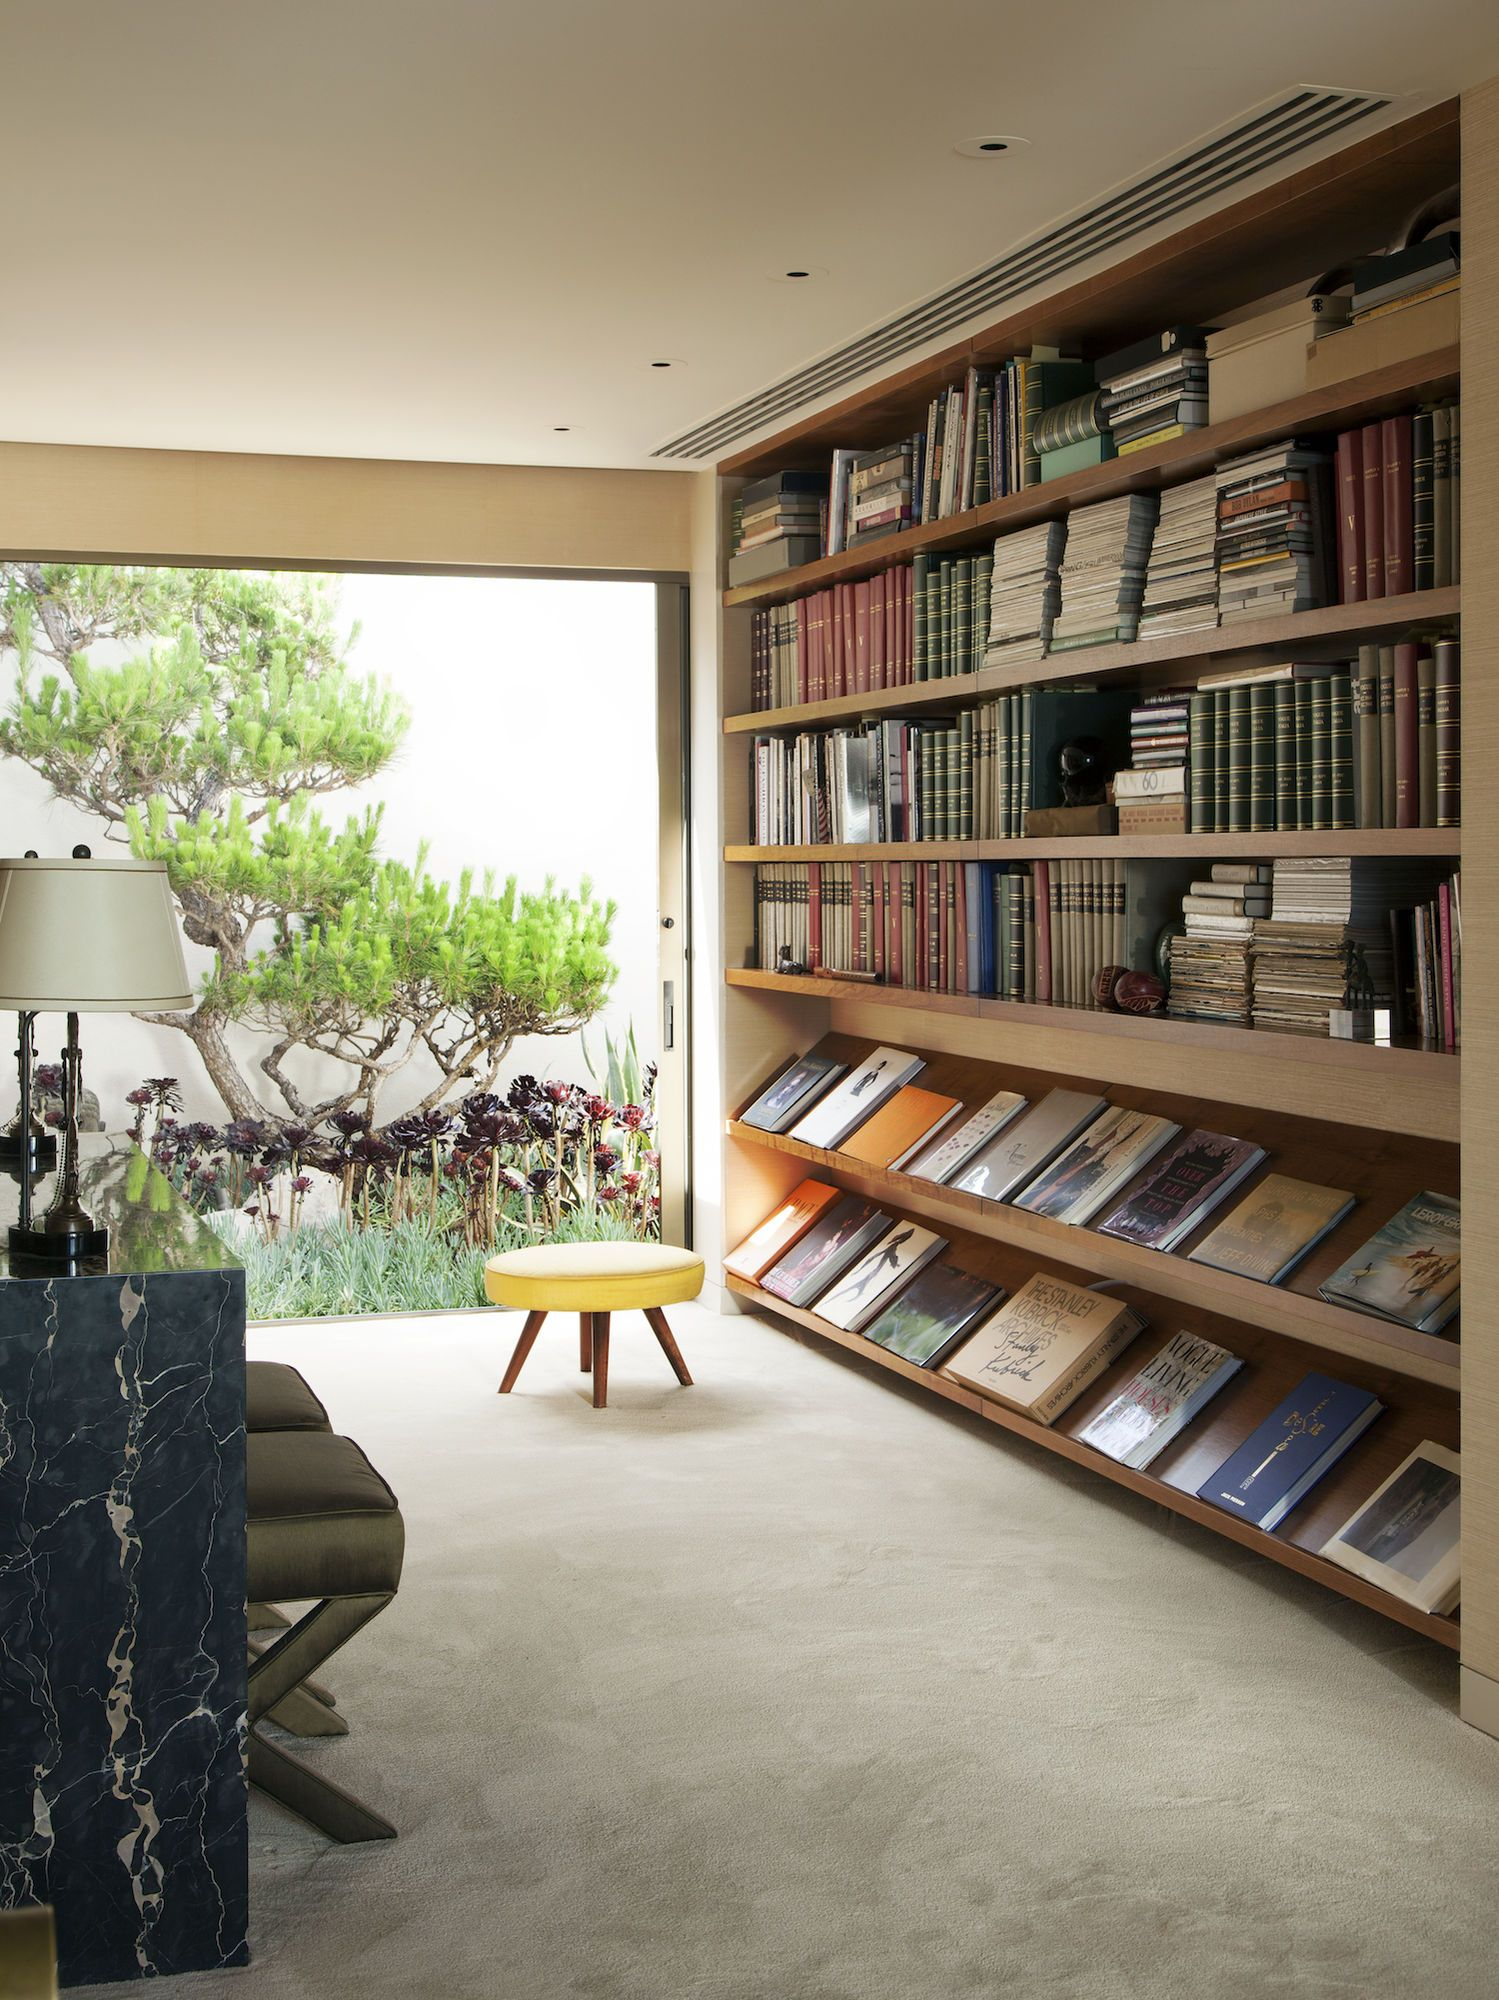 Shelf bookcases memorial wall displays antique white wall display - Steven Meisel Bookshelves Photo By Roger Davies From Architectural Digest